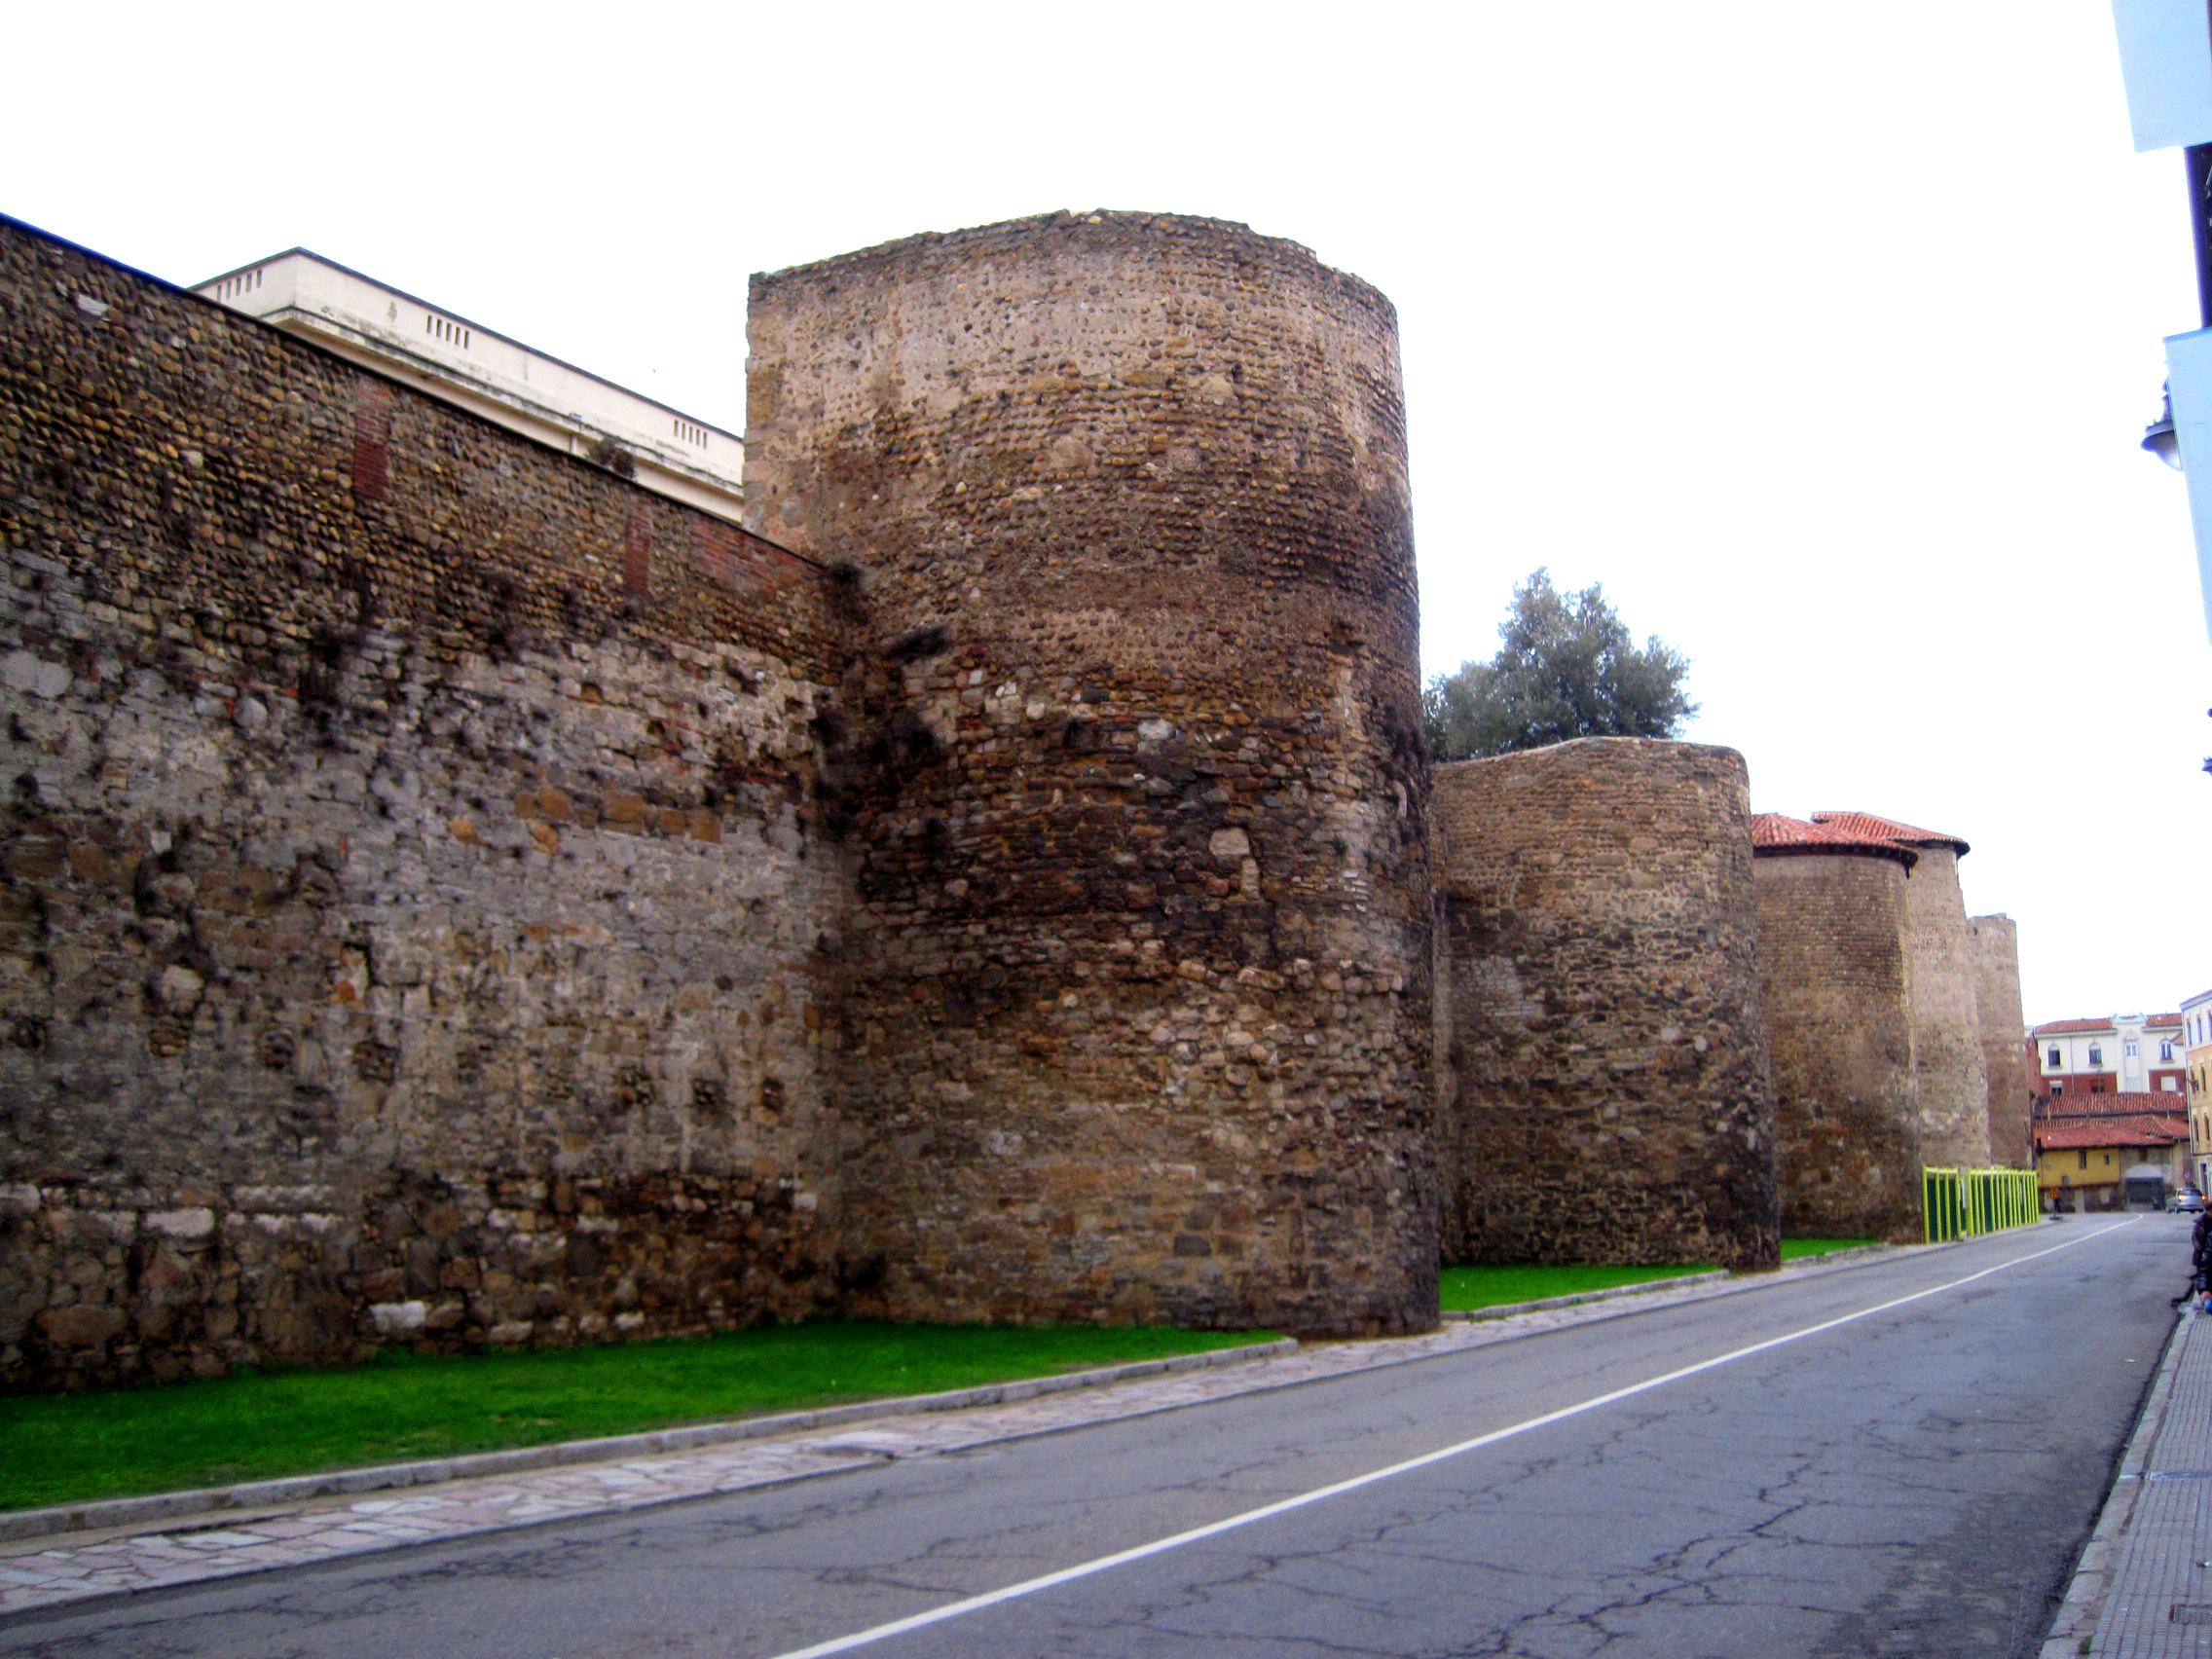 León Walls made of stone